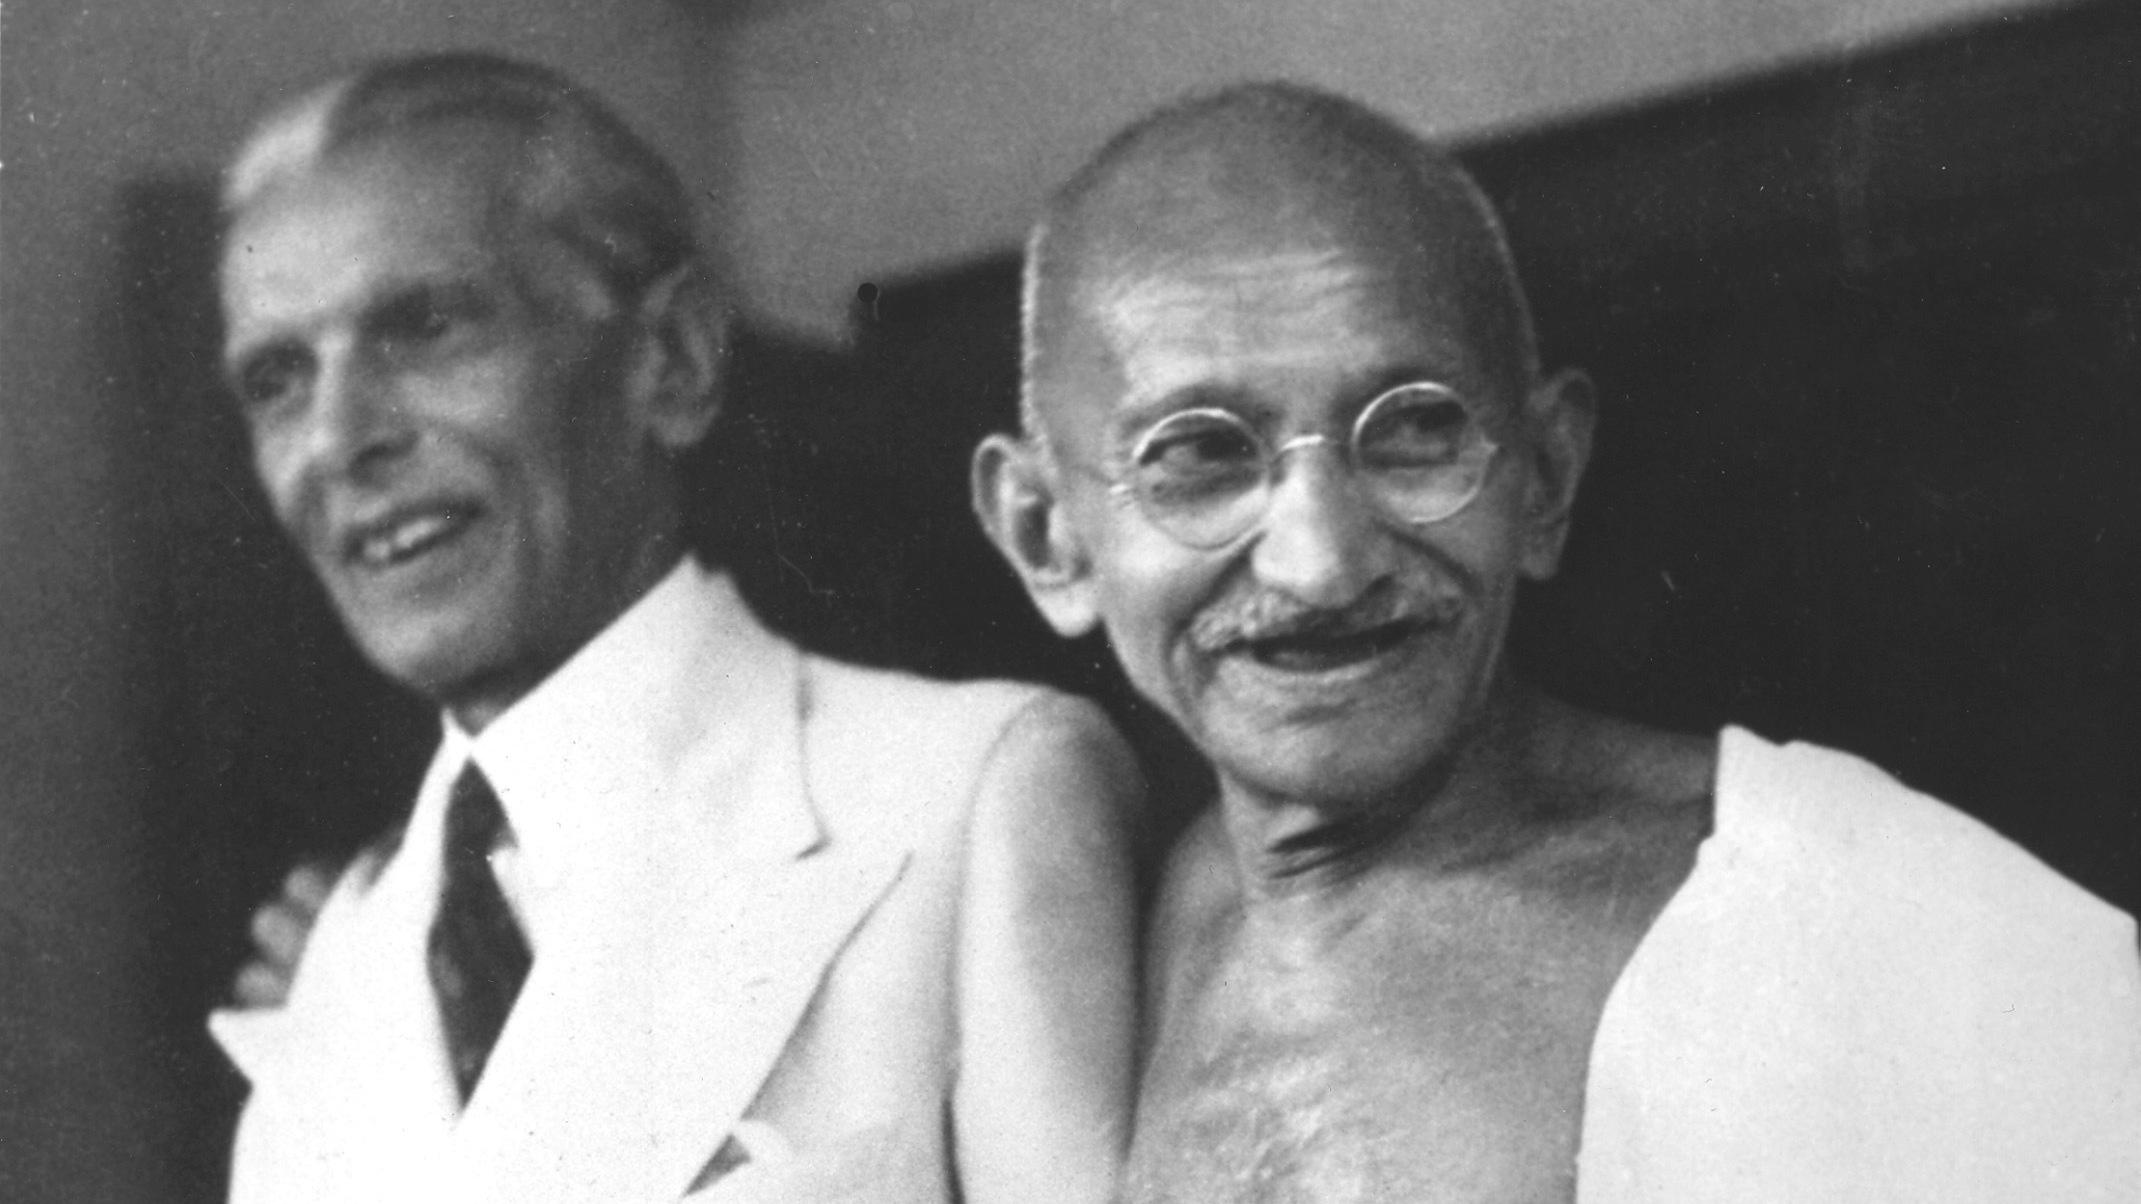 the life and contributions of ghandi as one of the leaders of india Summary: gandhi's childhood and adolescence were shaped by 3 forces: 1   leader age 49, in local dress, after his return to india, shortly before assuming.